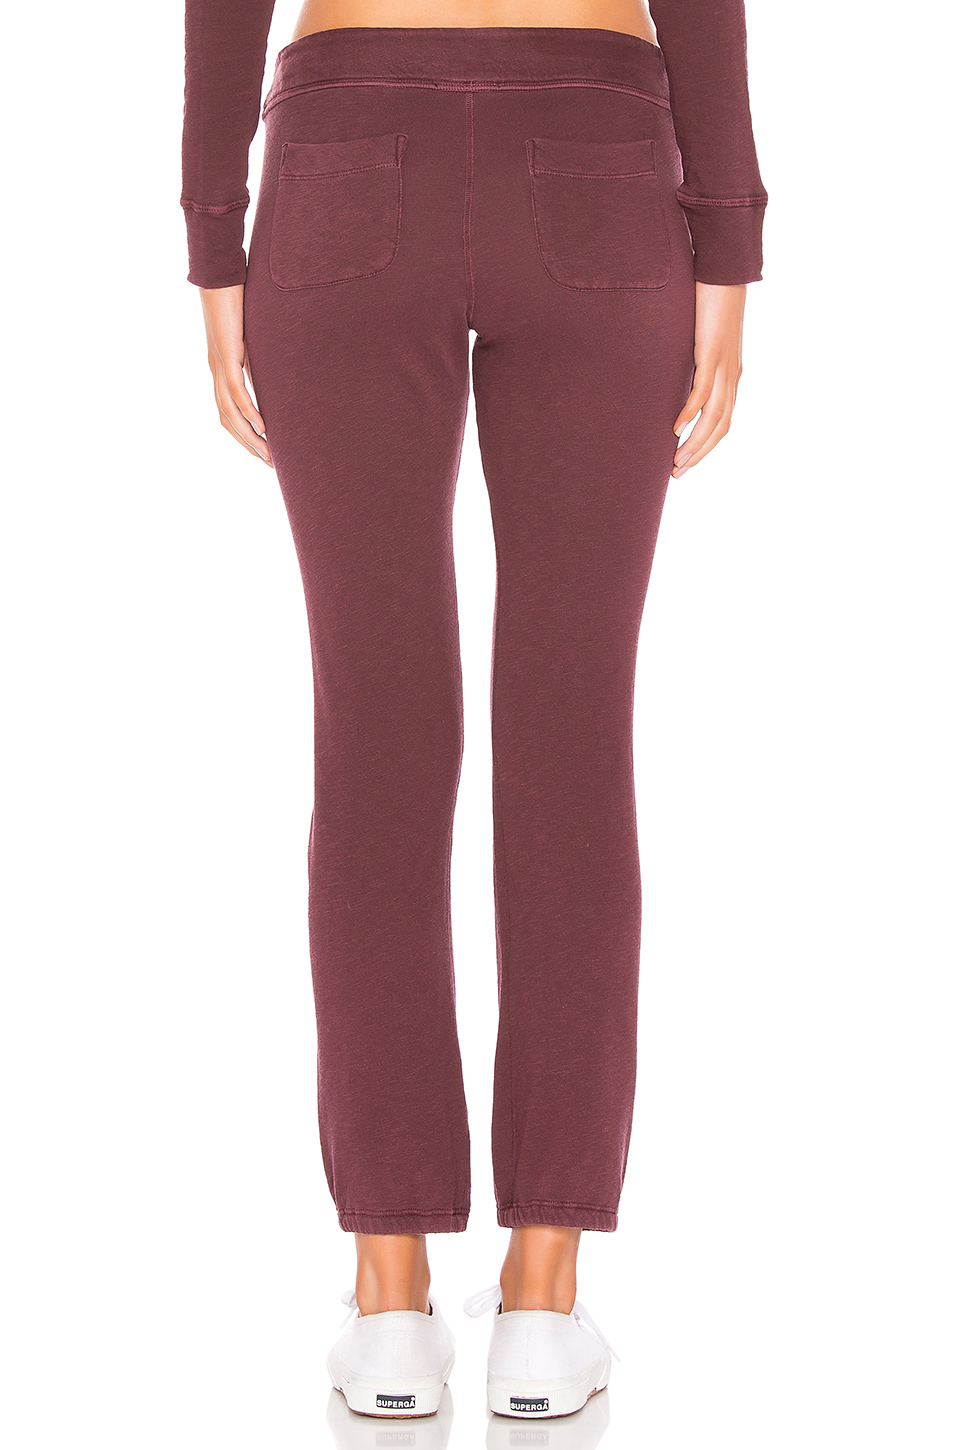 James Perse Vintage Cotton Genie Pant